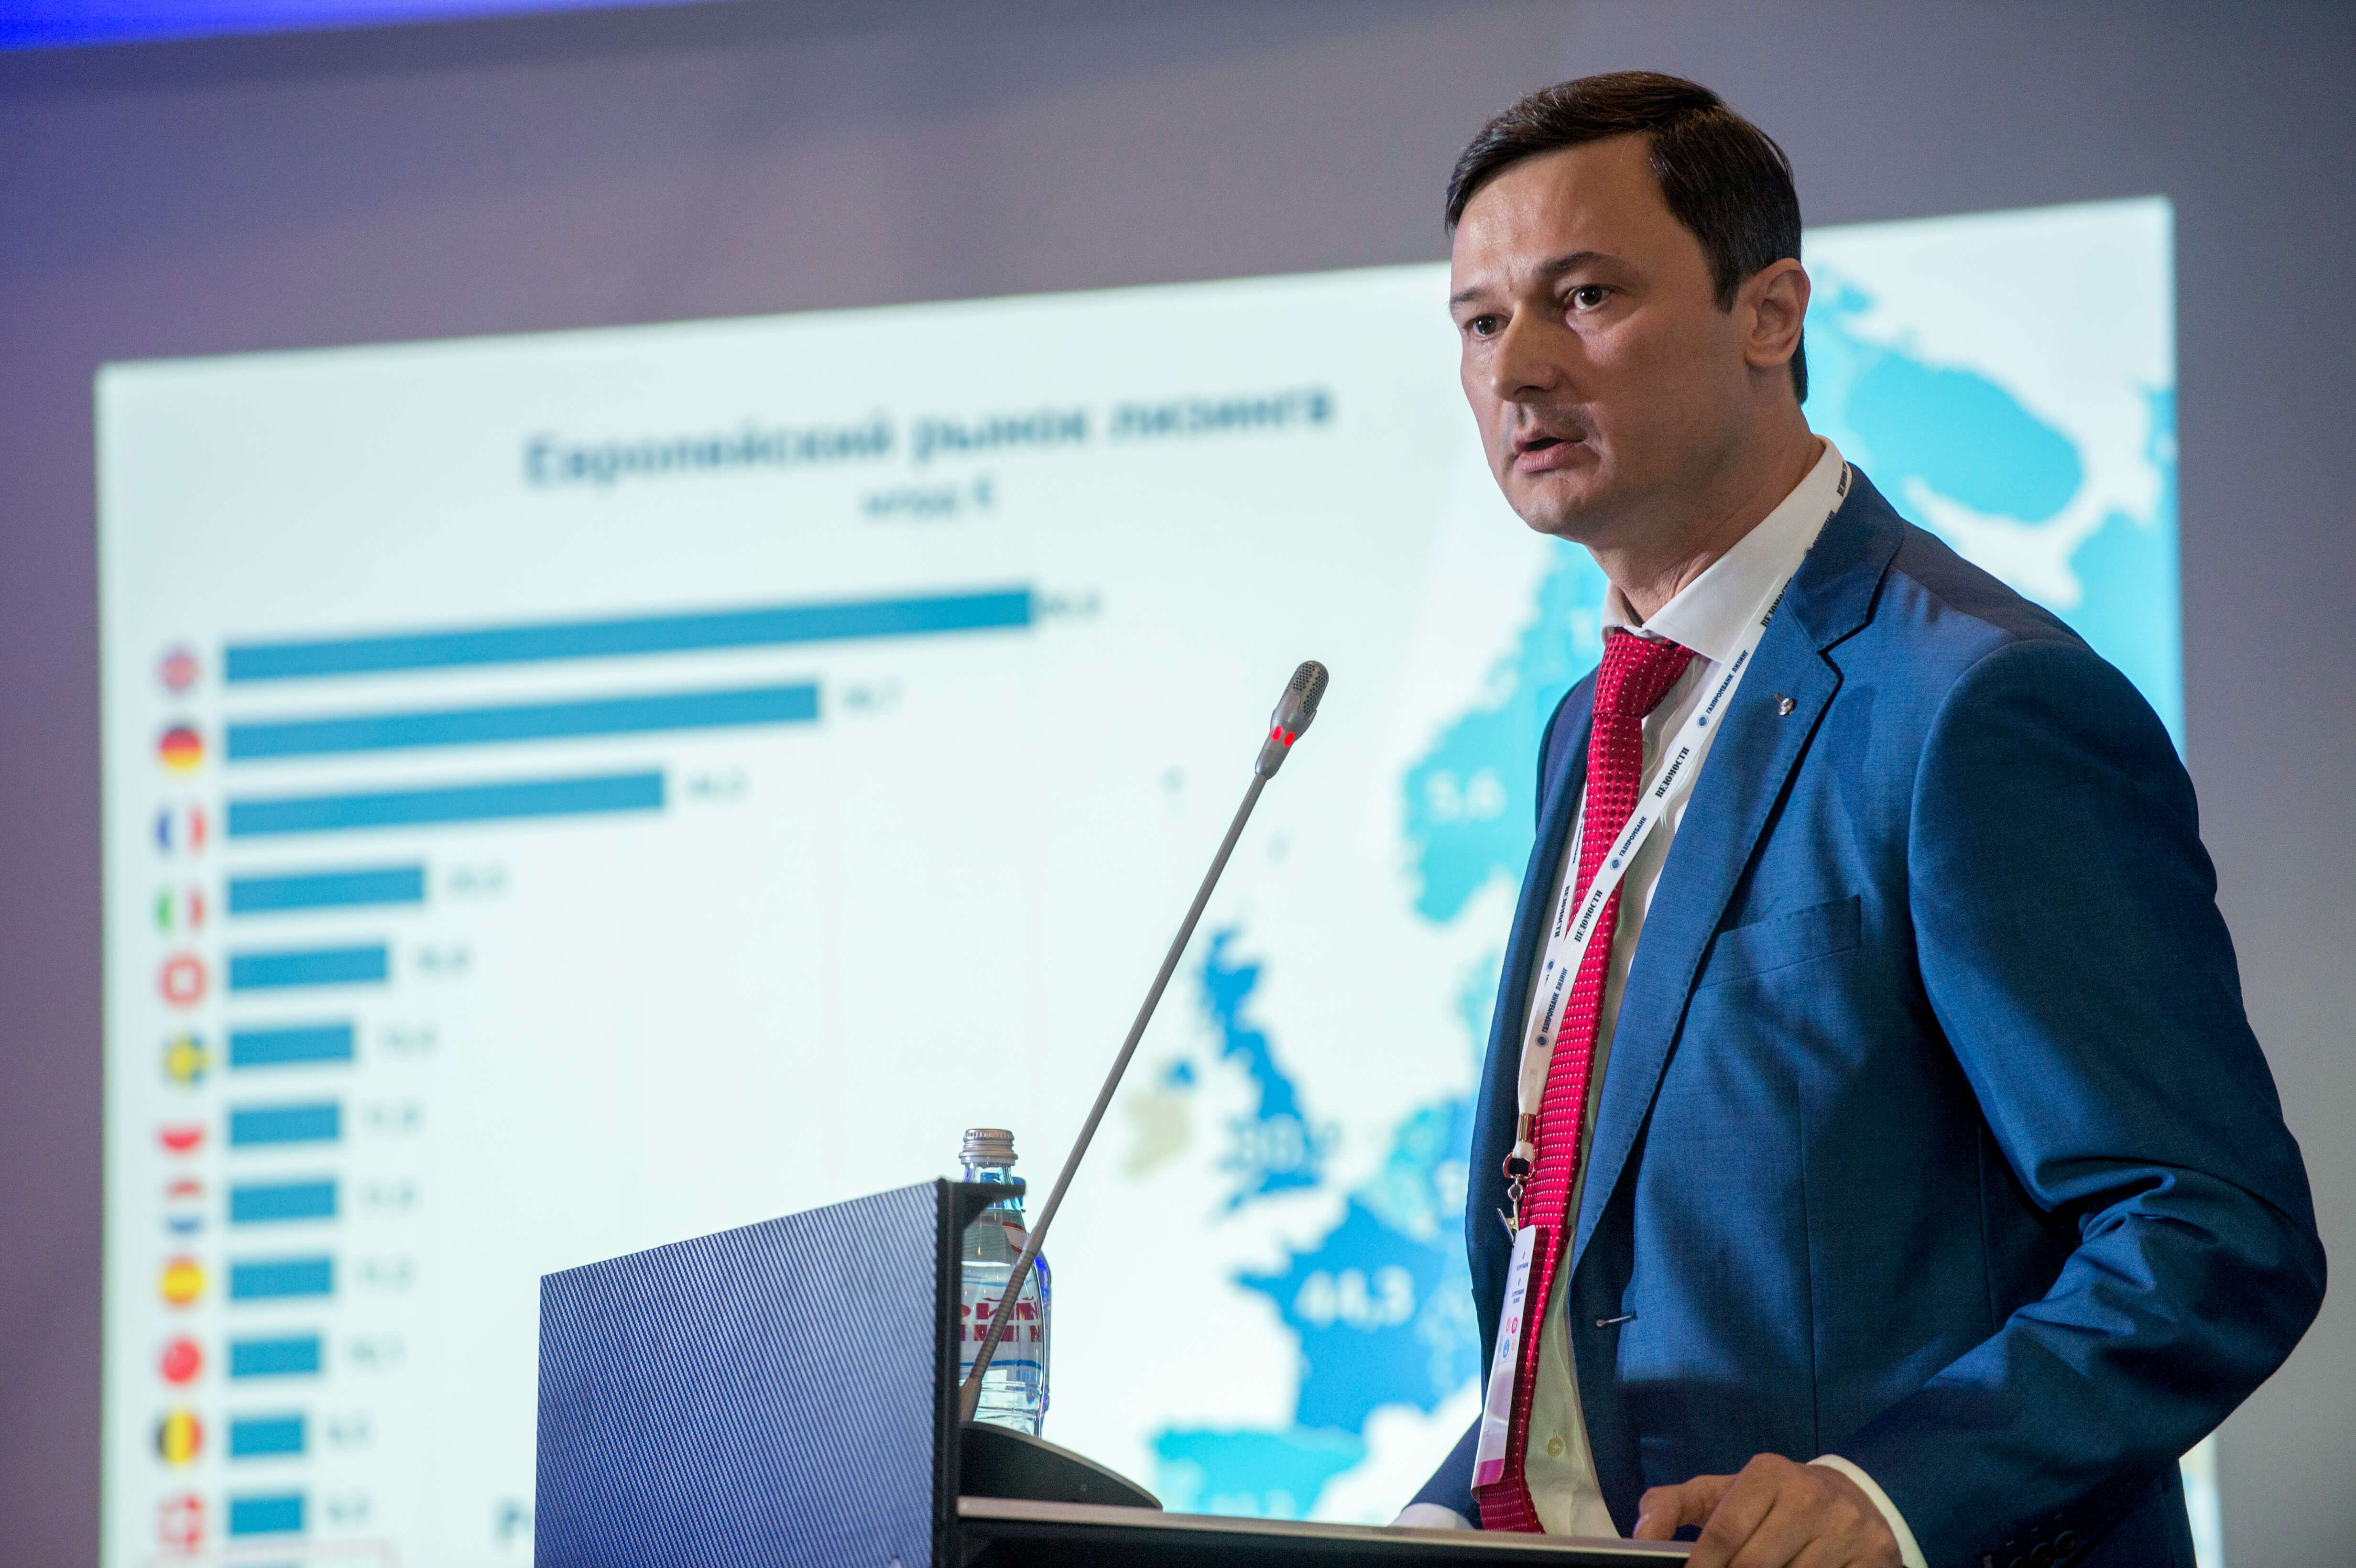 First leasing conference 2016 года - слайд 3